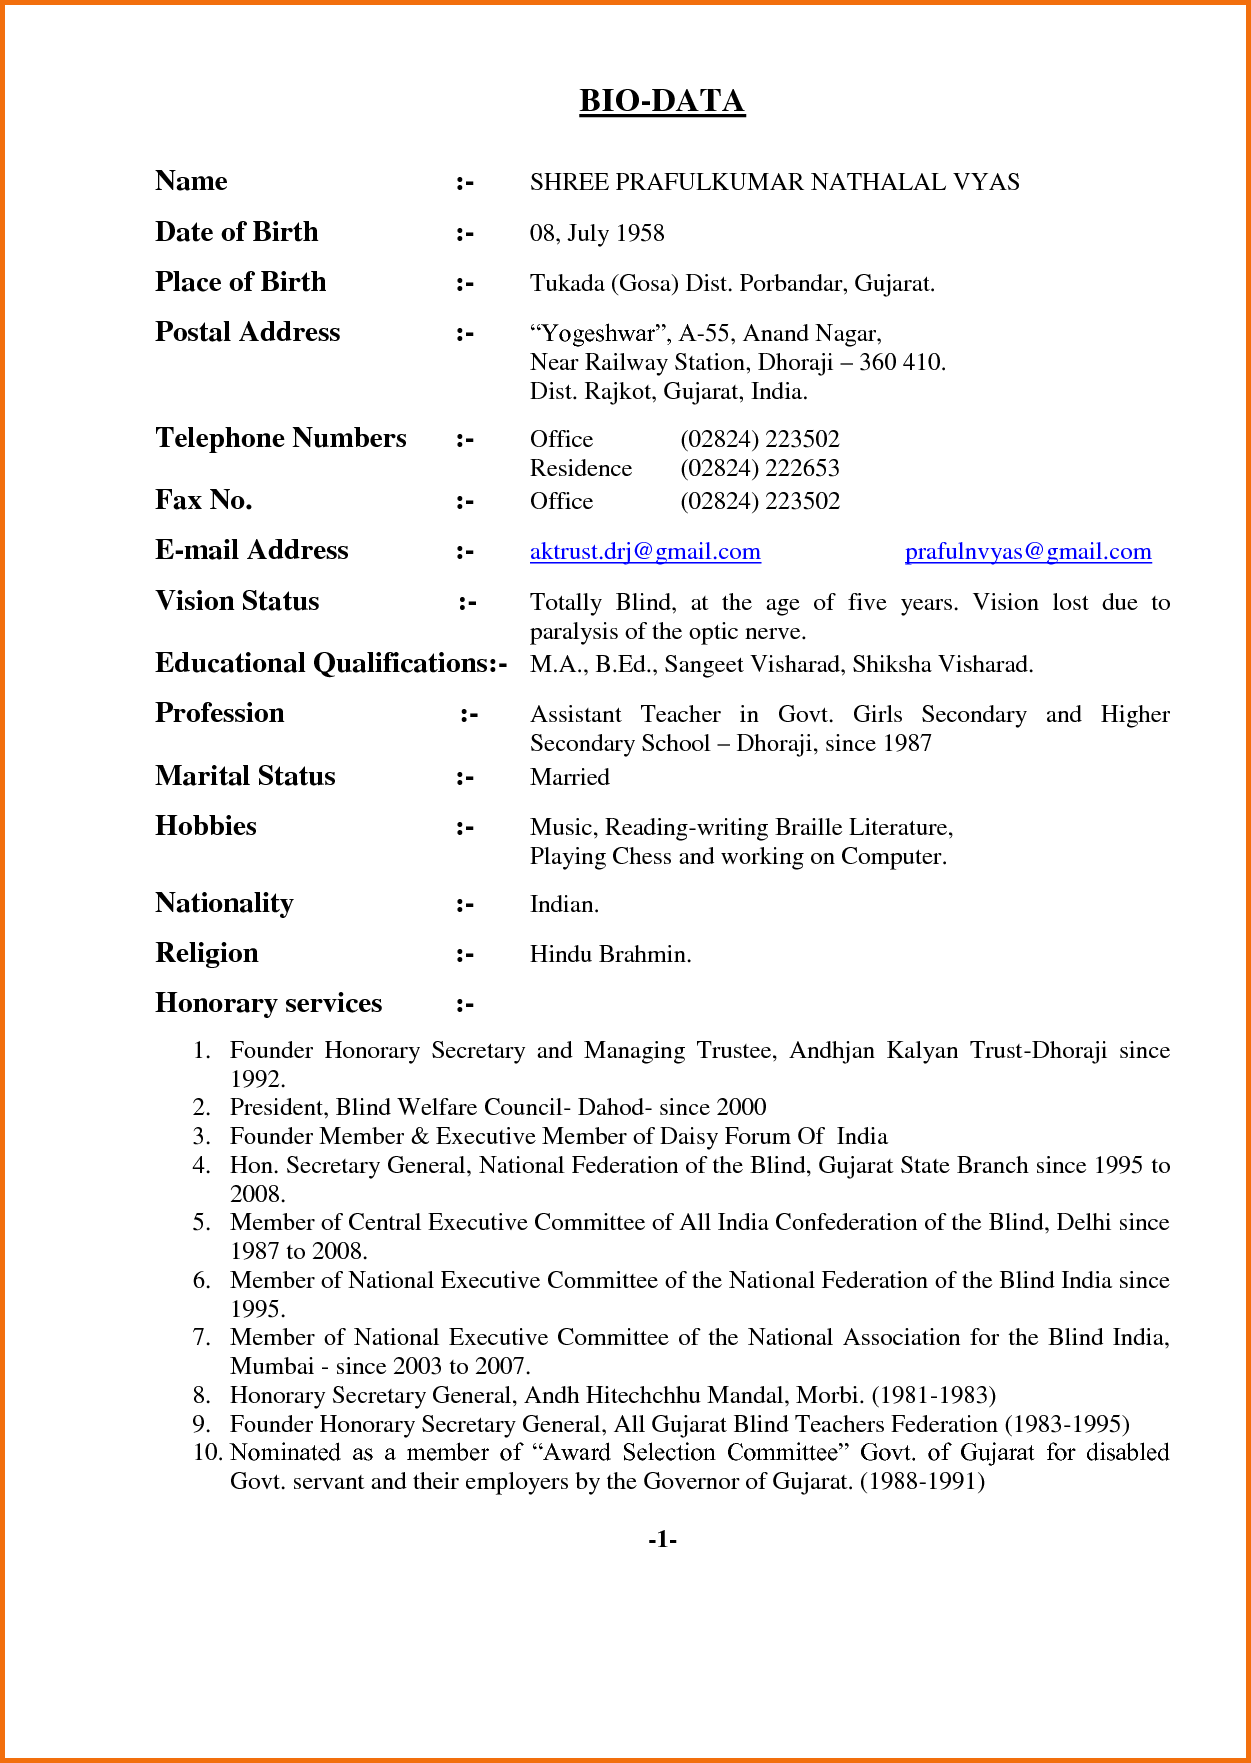 aea0751be5ad392c98a7c1f2a26876b0 Teacher Resume Formatting on resume organization, resume language, resume margins, resume examples, resume objectives, resume references format, resume text, resume borders, resume with color, resume paragraphs, resume search, resume drawing, resume dates, resume powerpoint, resume format page 2, resume worksheet, resume spelling, resume distribution, resume format pdf, resume animation,